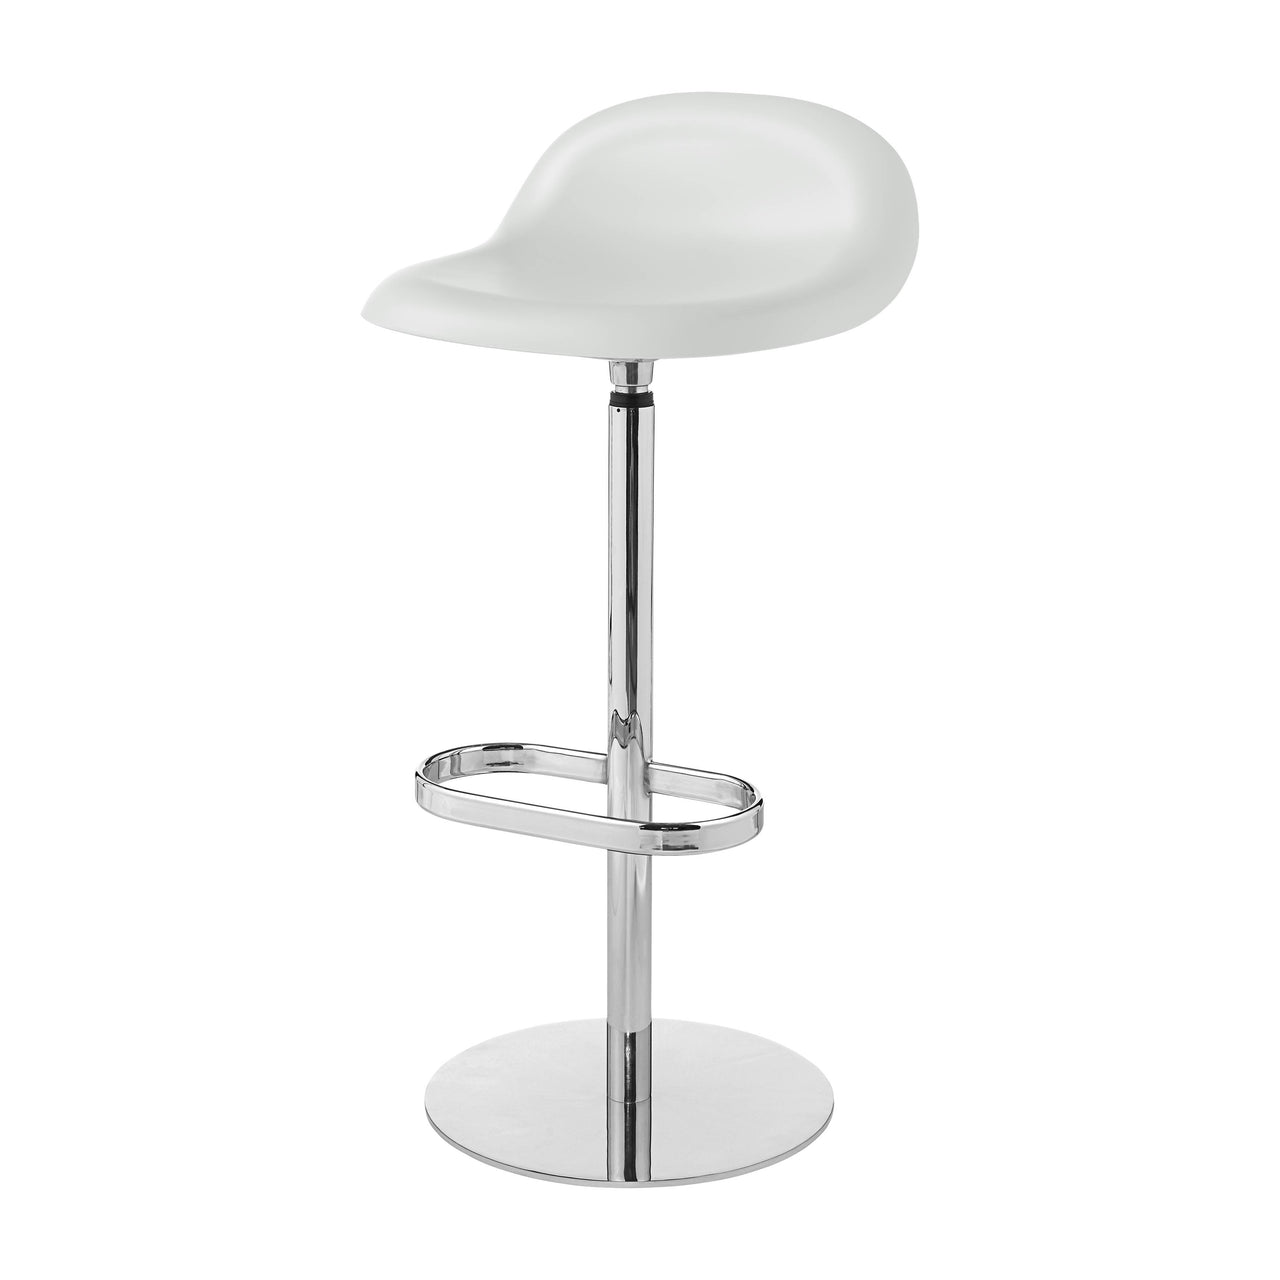 3D Bar Stool: Swivel Base + Soft White